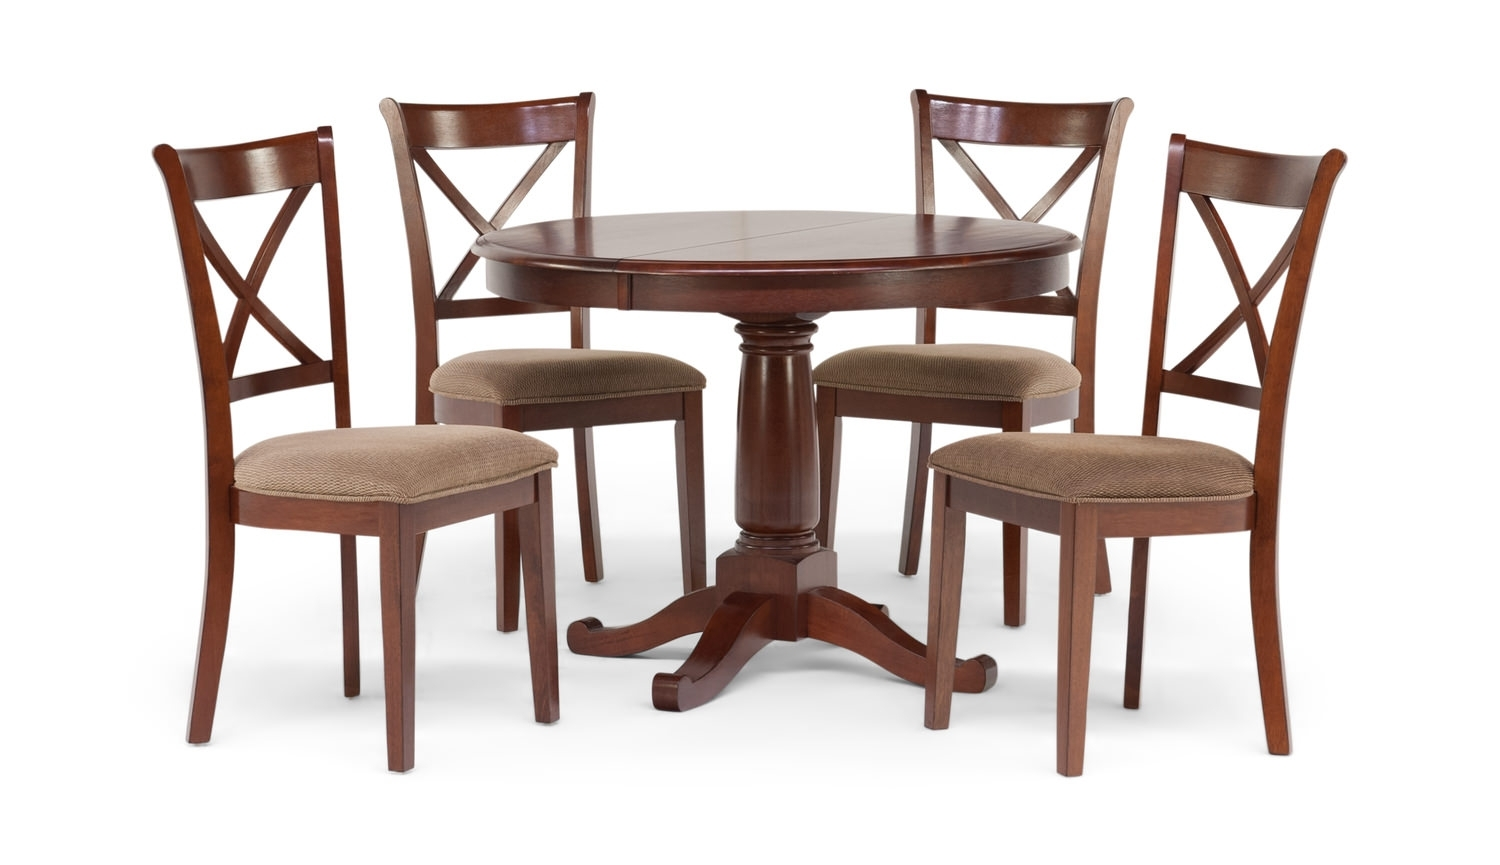 Desoto Table With 4 Chairsthomas Cole | Hom Furniture For 2018 Caden Round Dining Tables (Photo 10 of 20)